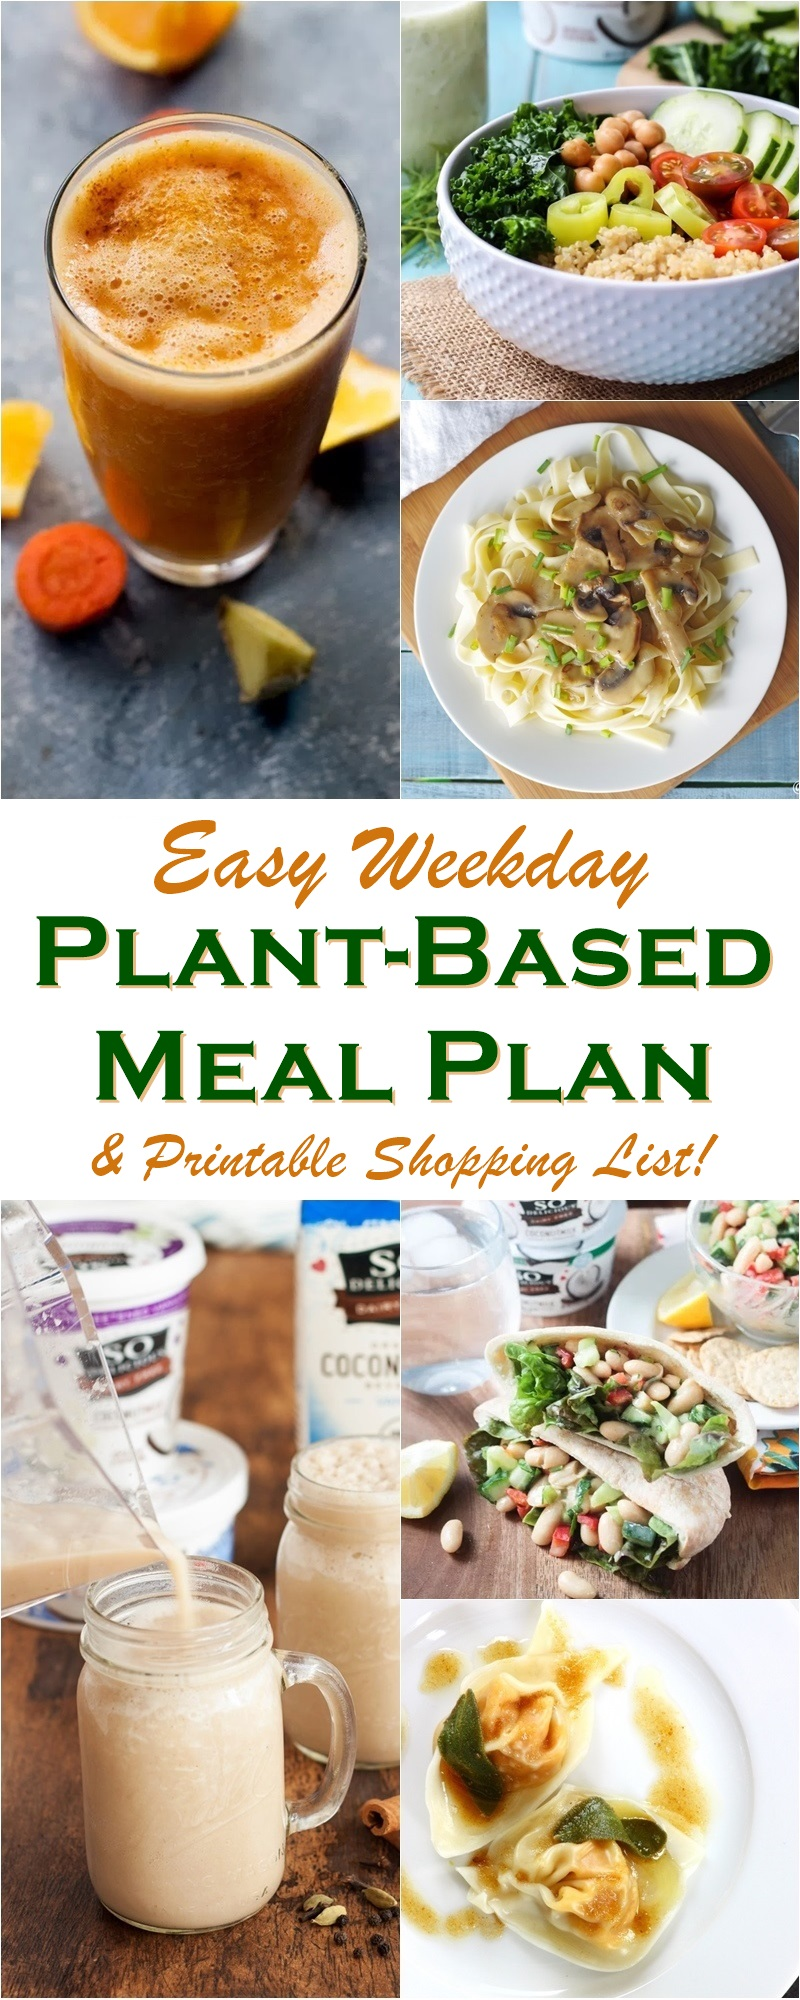 Easy weekday plant based meal plan printable shopping list easy weekday plant based meal plan new delicious dairy free and vegan recipes forumfinder Gallery